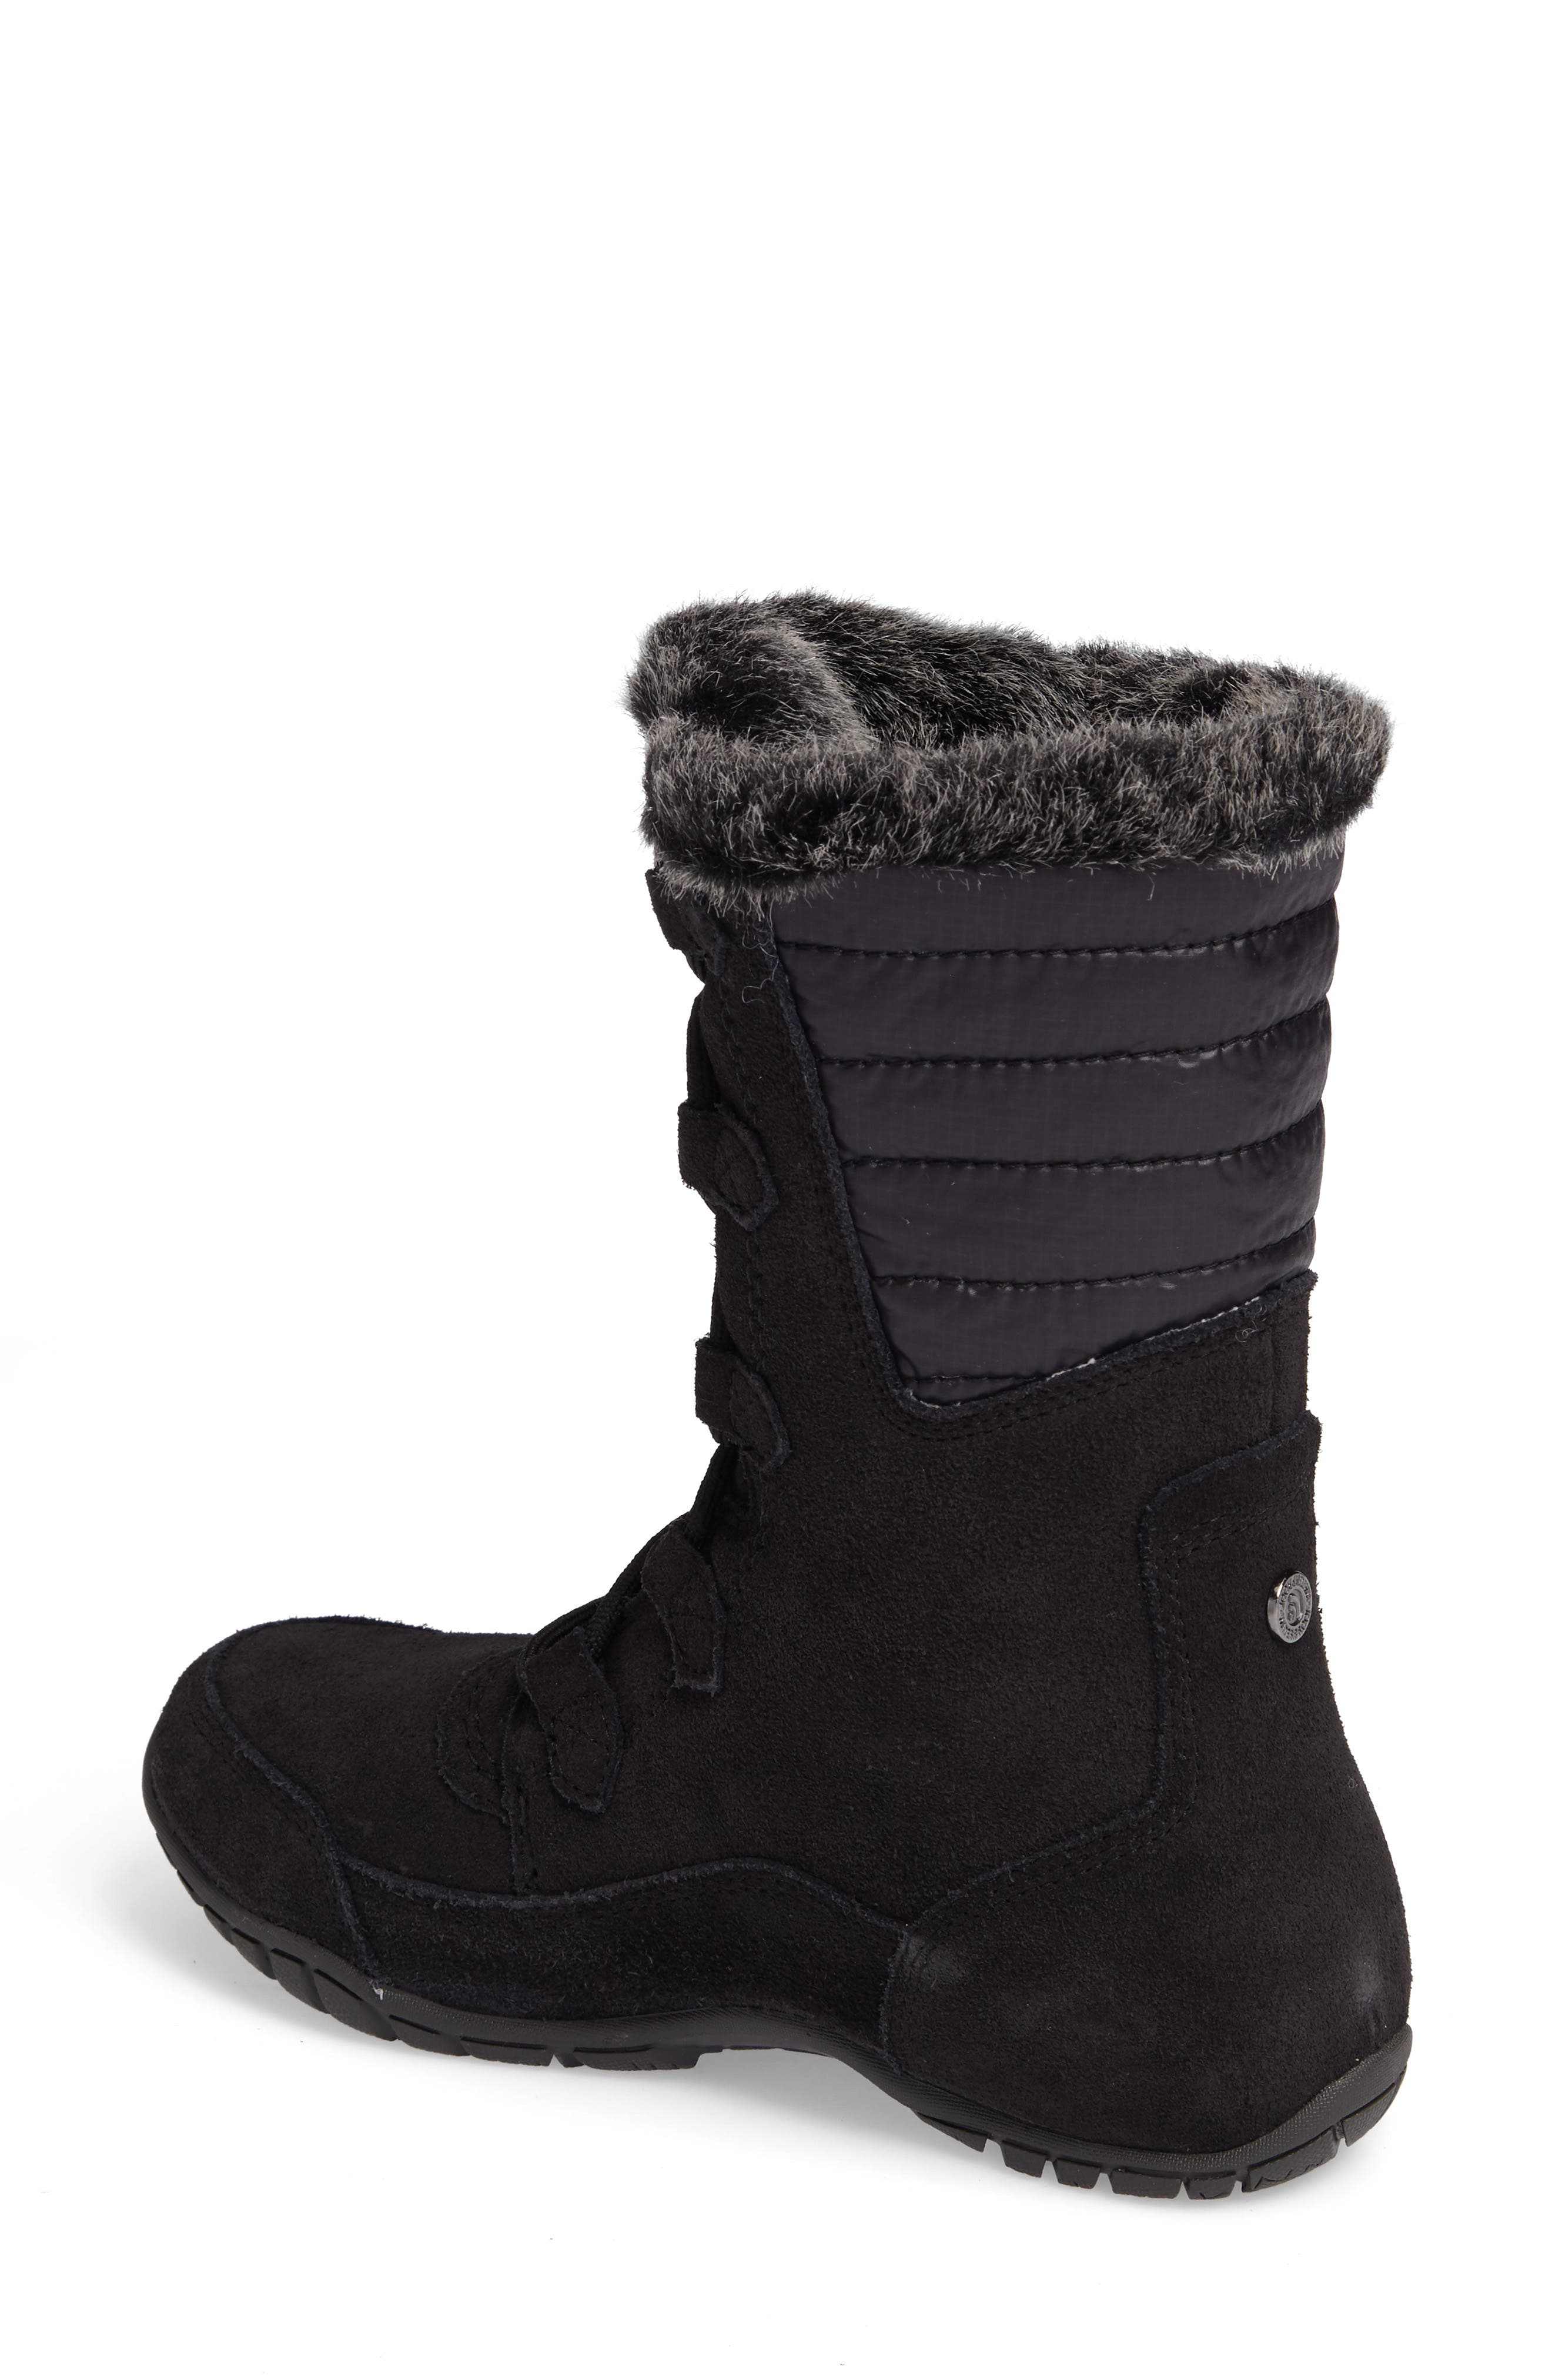 Nuptse Purna II Waterproof PrimaLoft<sup>®</sup> Silver Eco Insulated Winter Boot,                             Alternate thumbnail 2, color,                             Tnf Black/ Beluga Grey